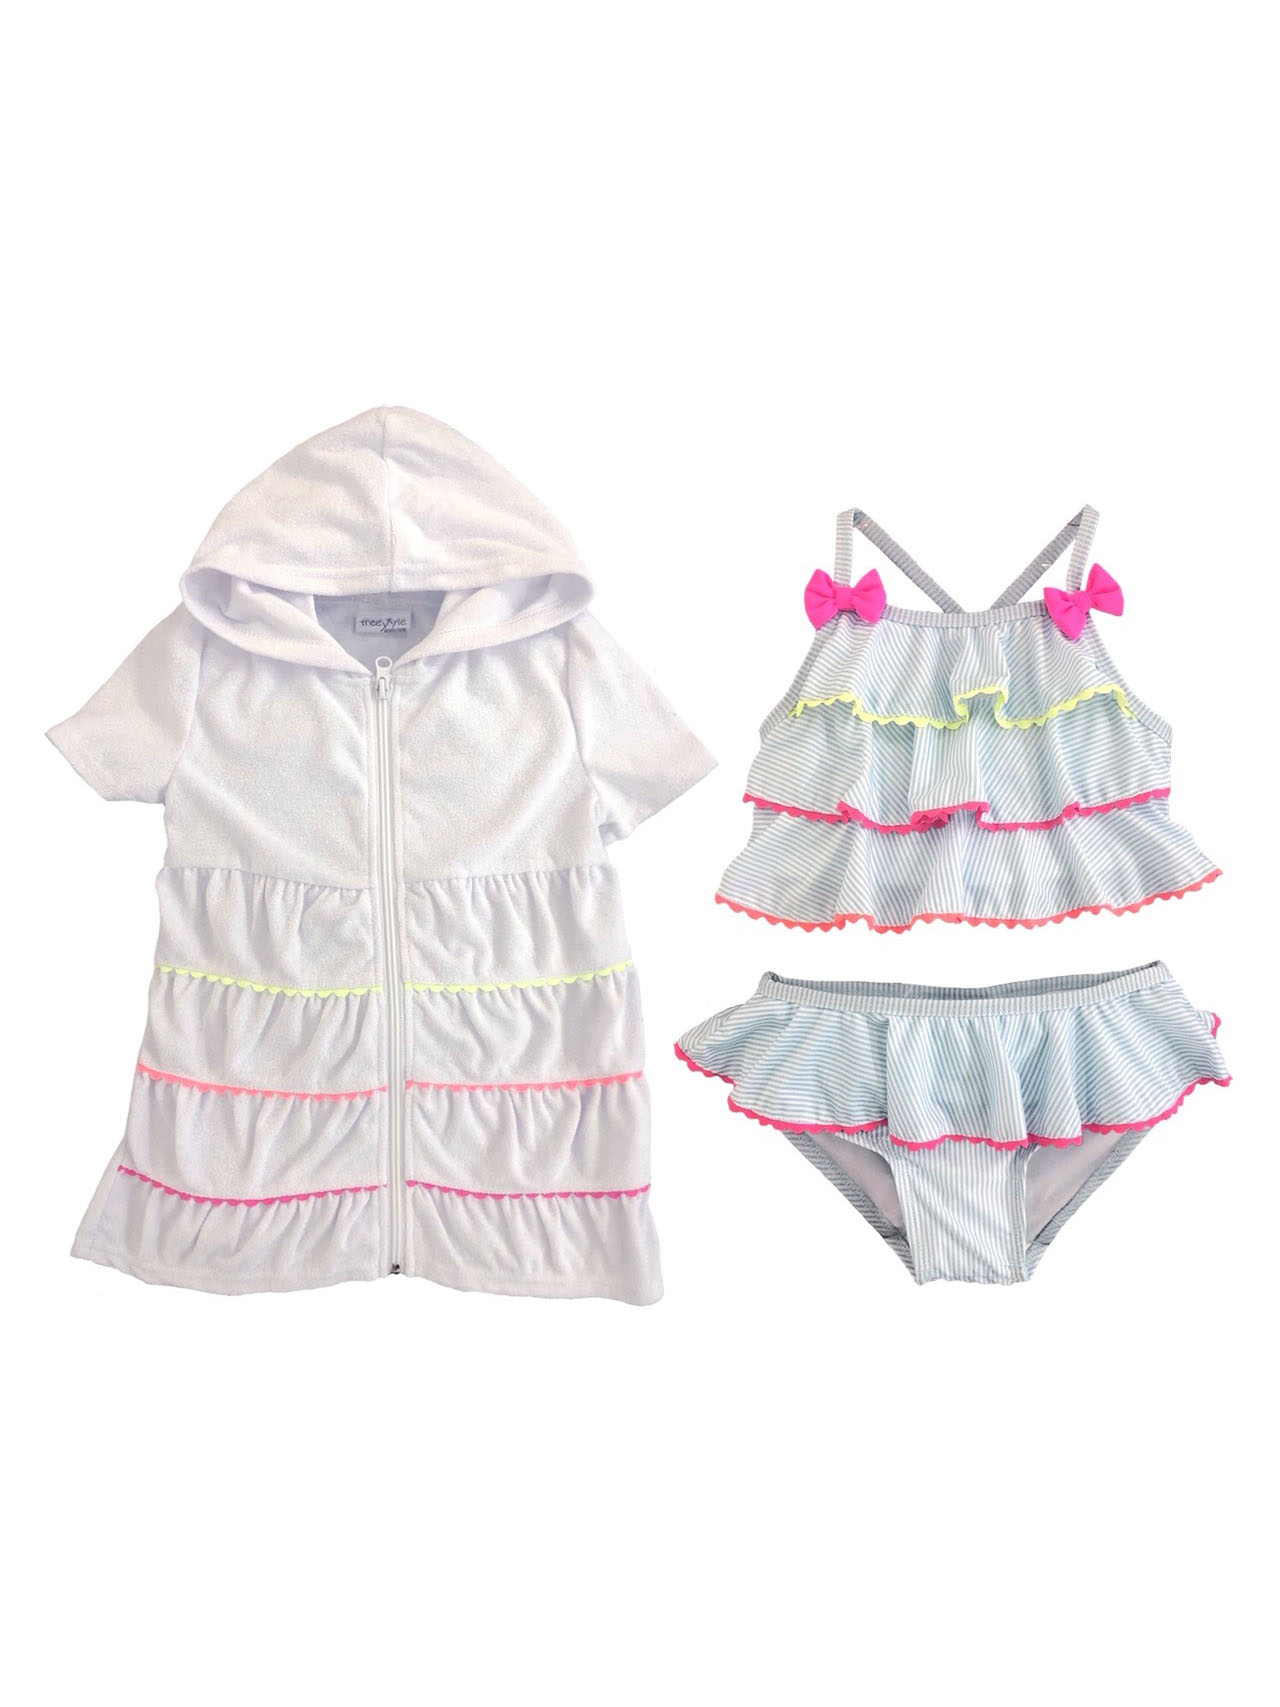 Tankini Swimsuit and Terry Cover Up, 2-Piece Set (Toddler and Infant Girls)